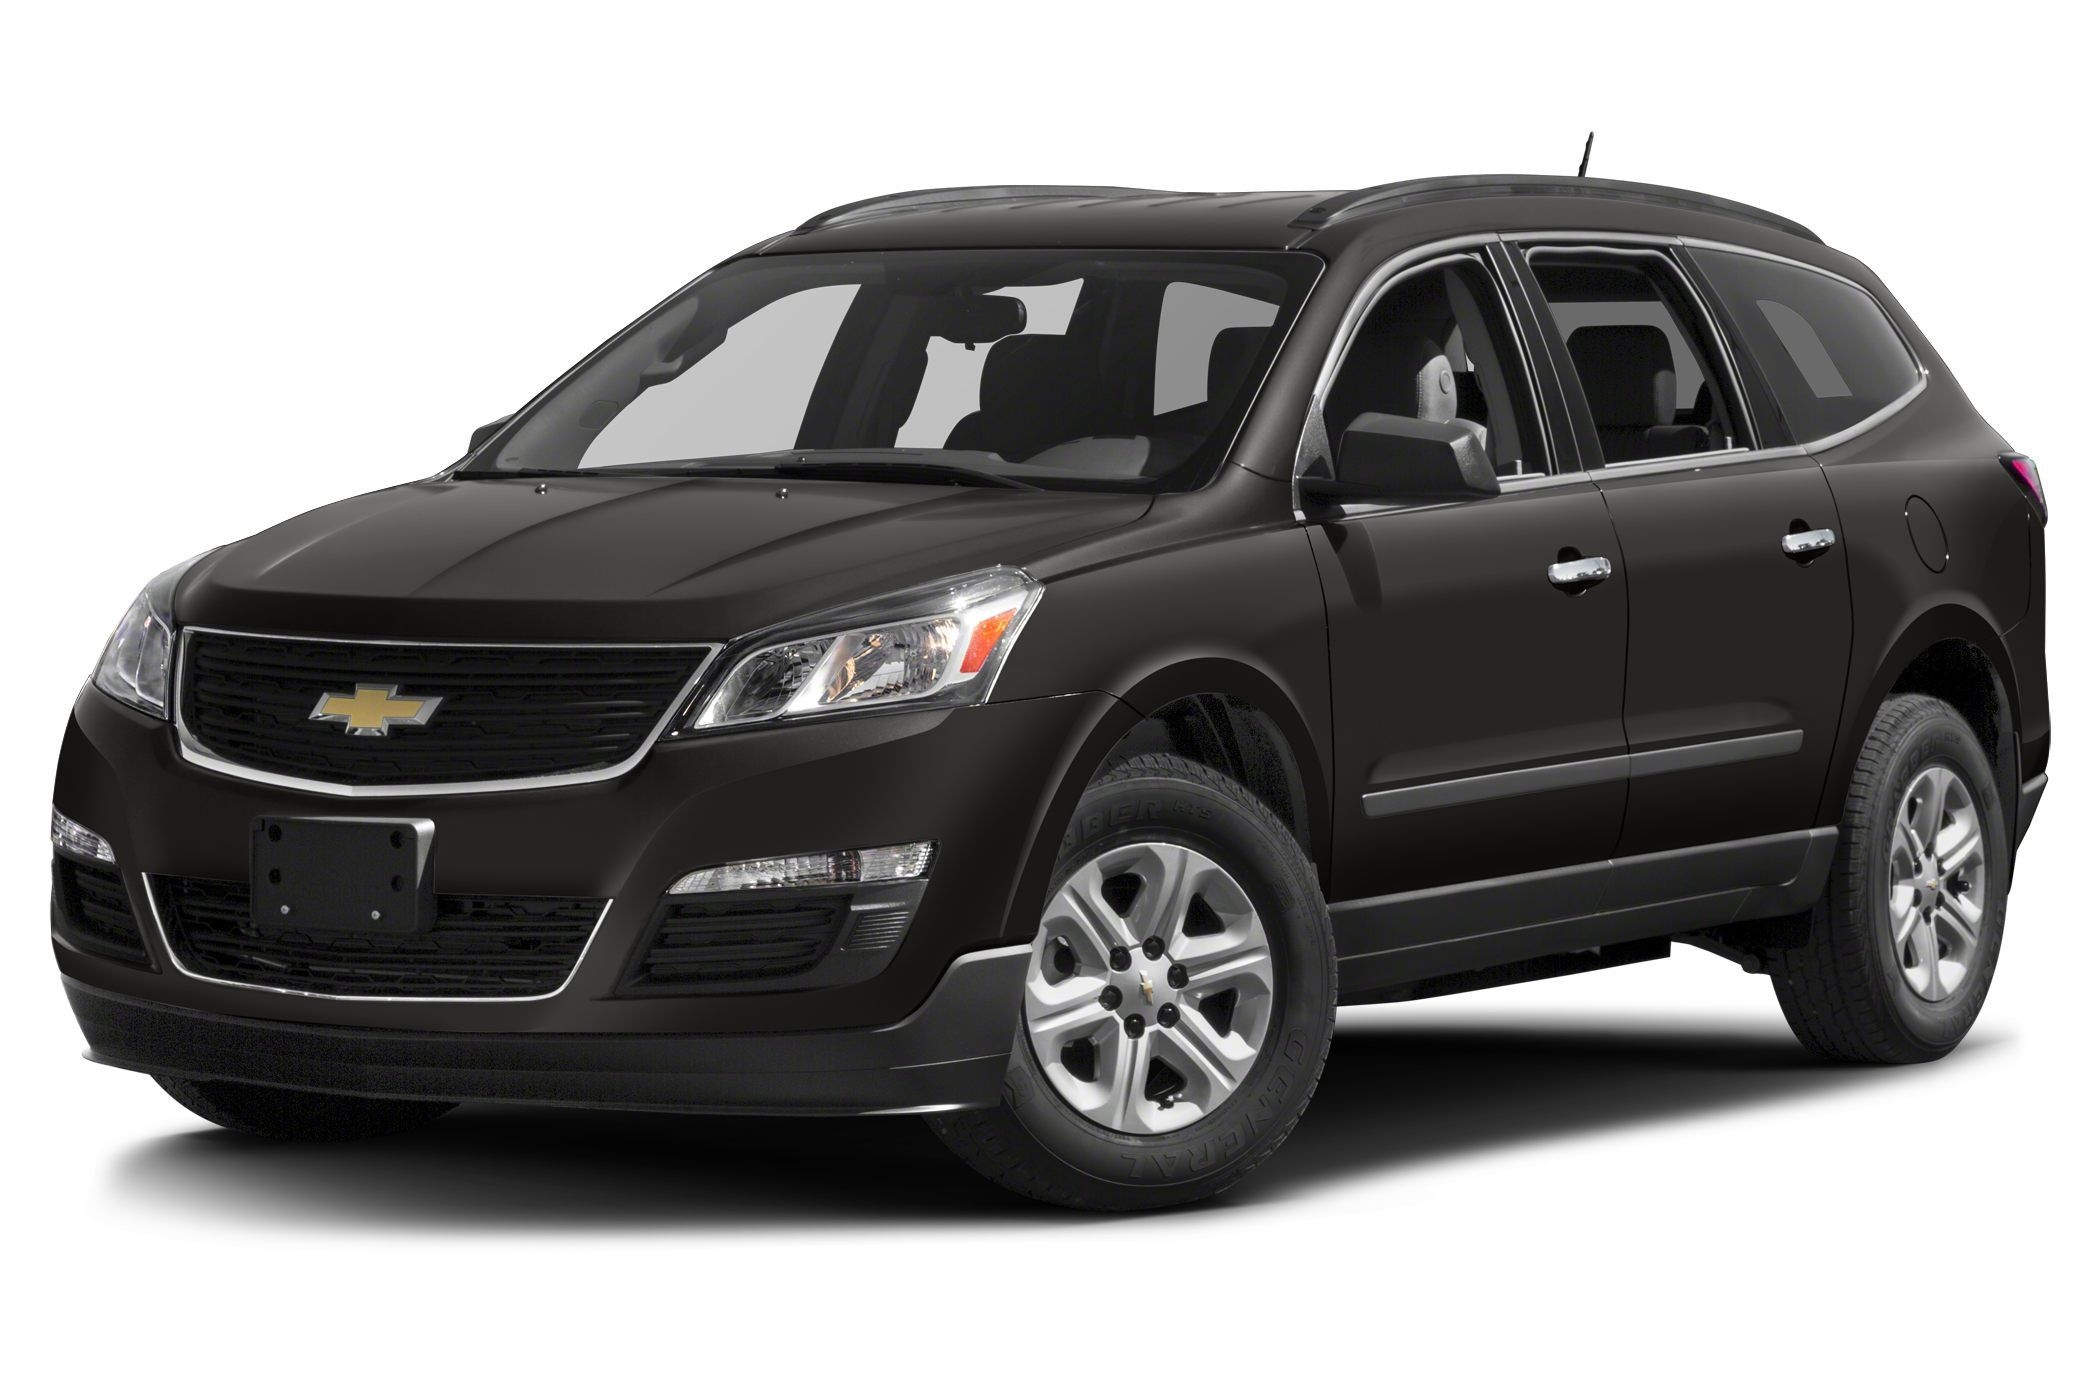 2018 Chevy Traverse Towing Capacity Mobil Eropa